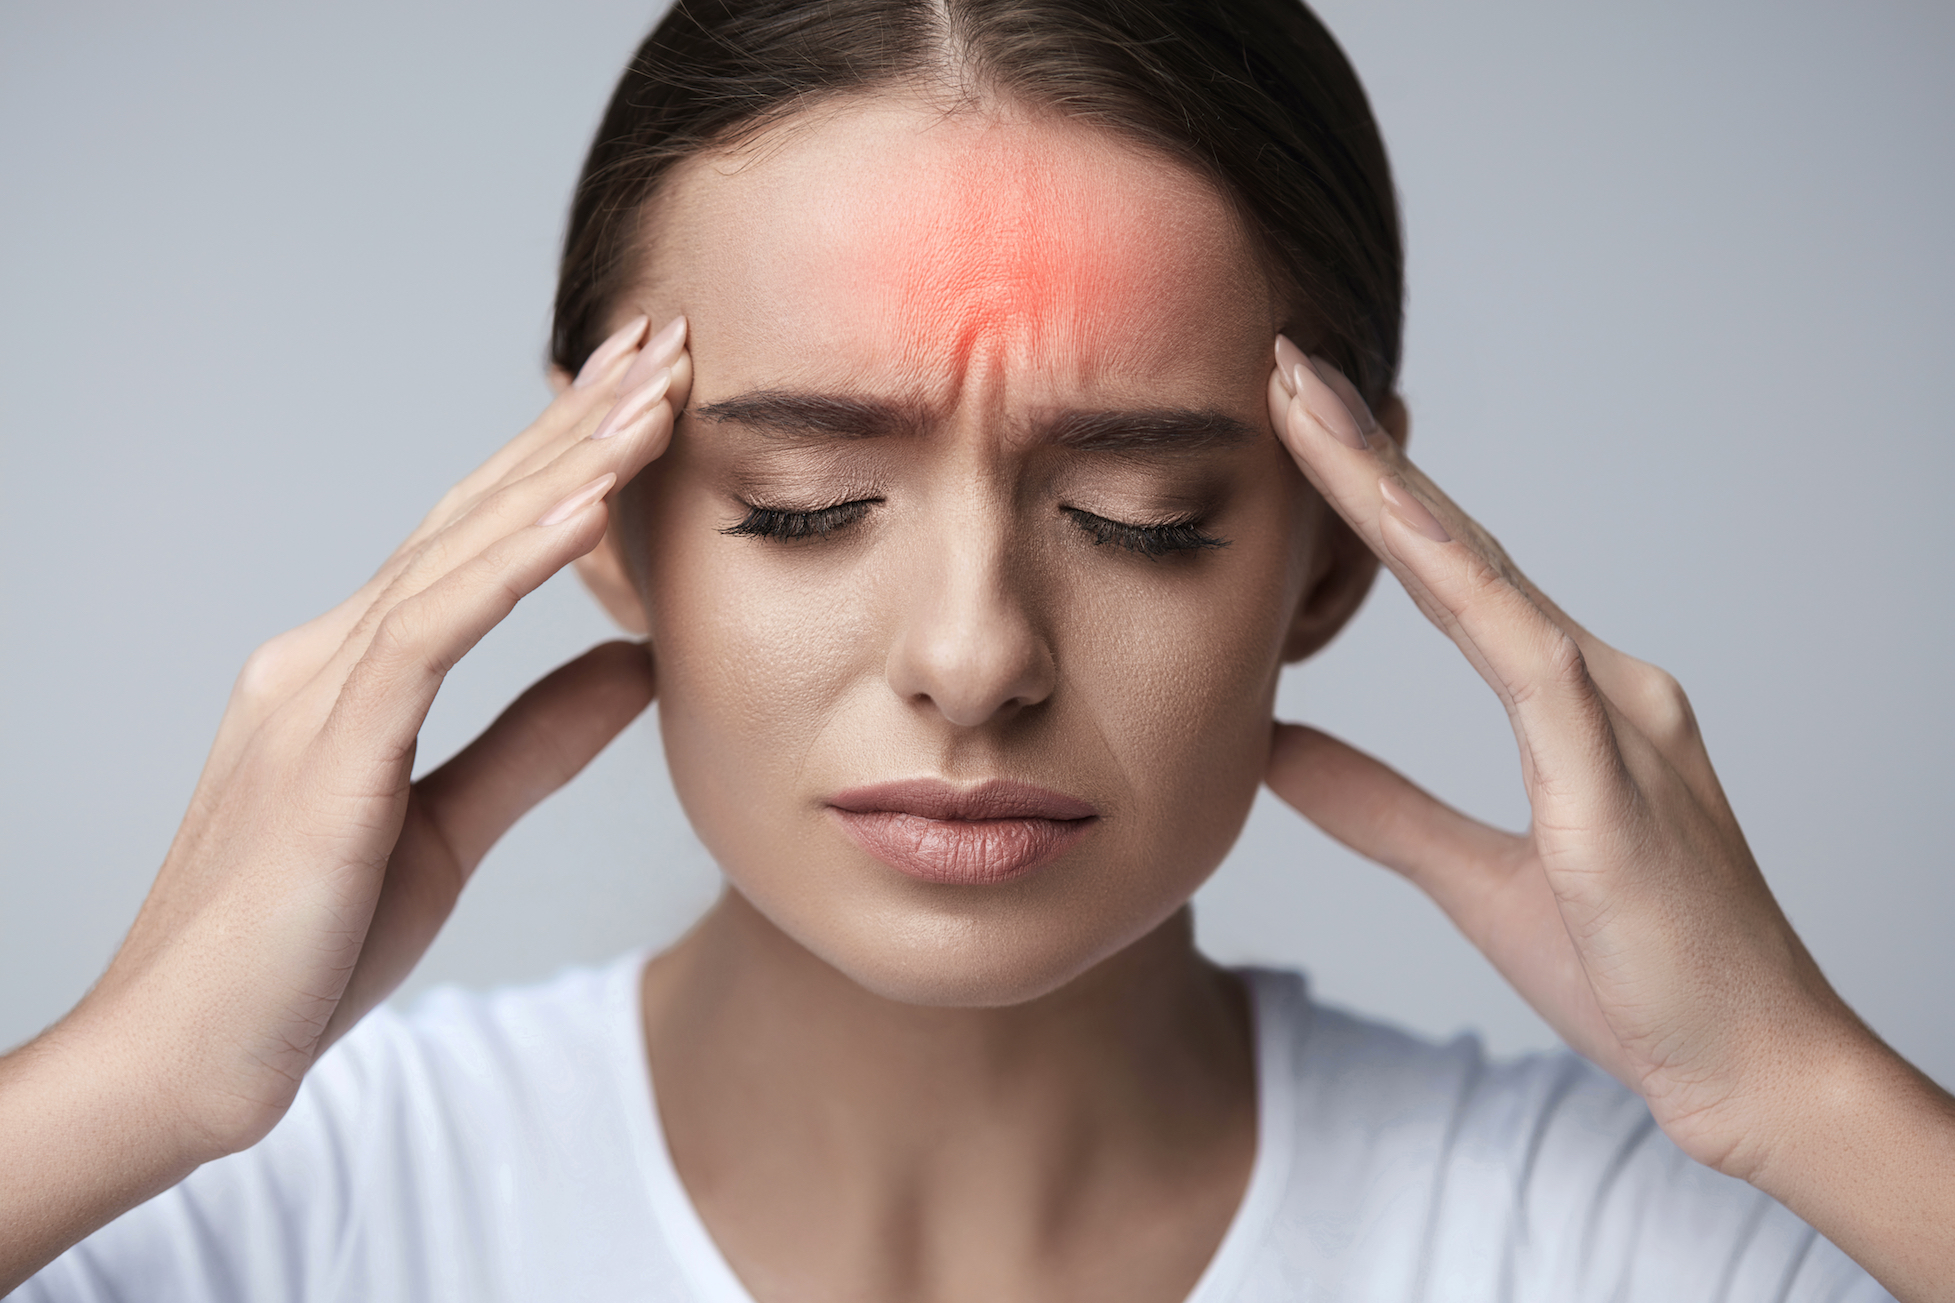 A new study has found a potential cause of migraines that could explain why women are affected more often than men.